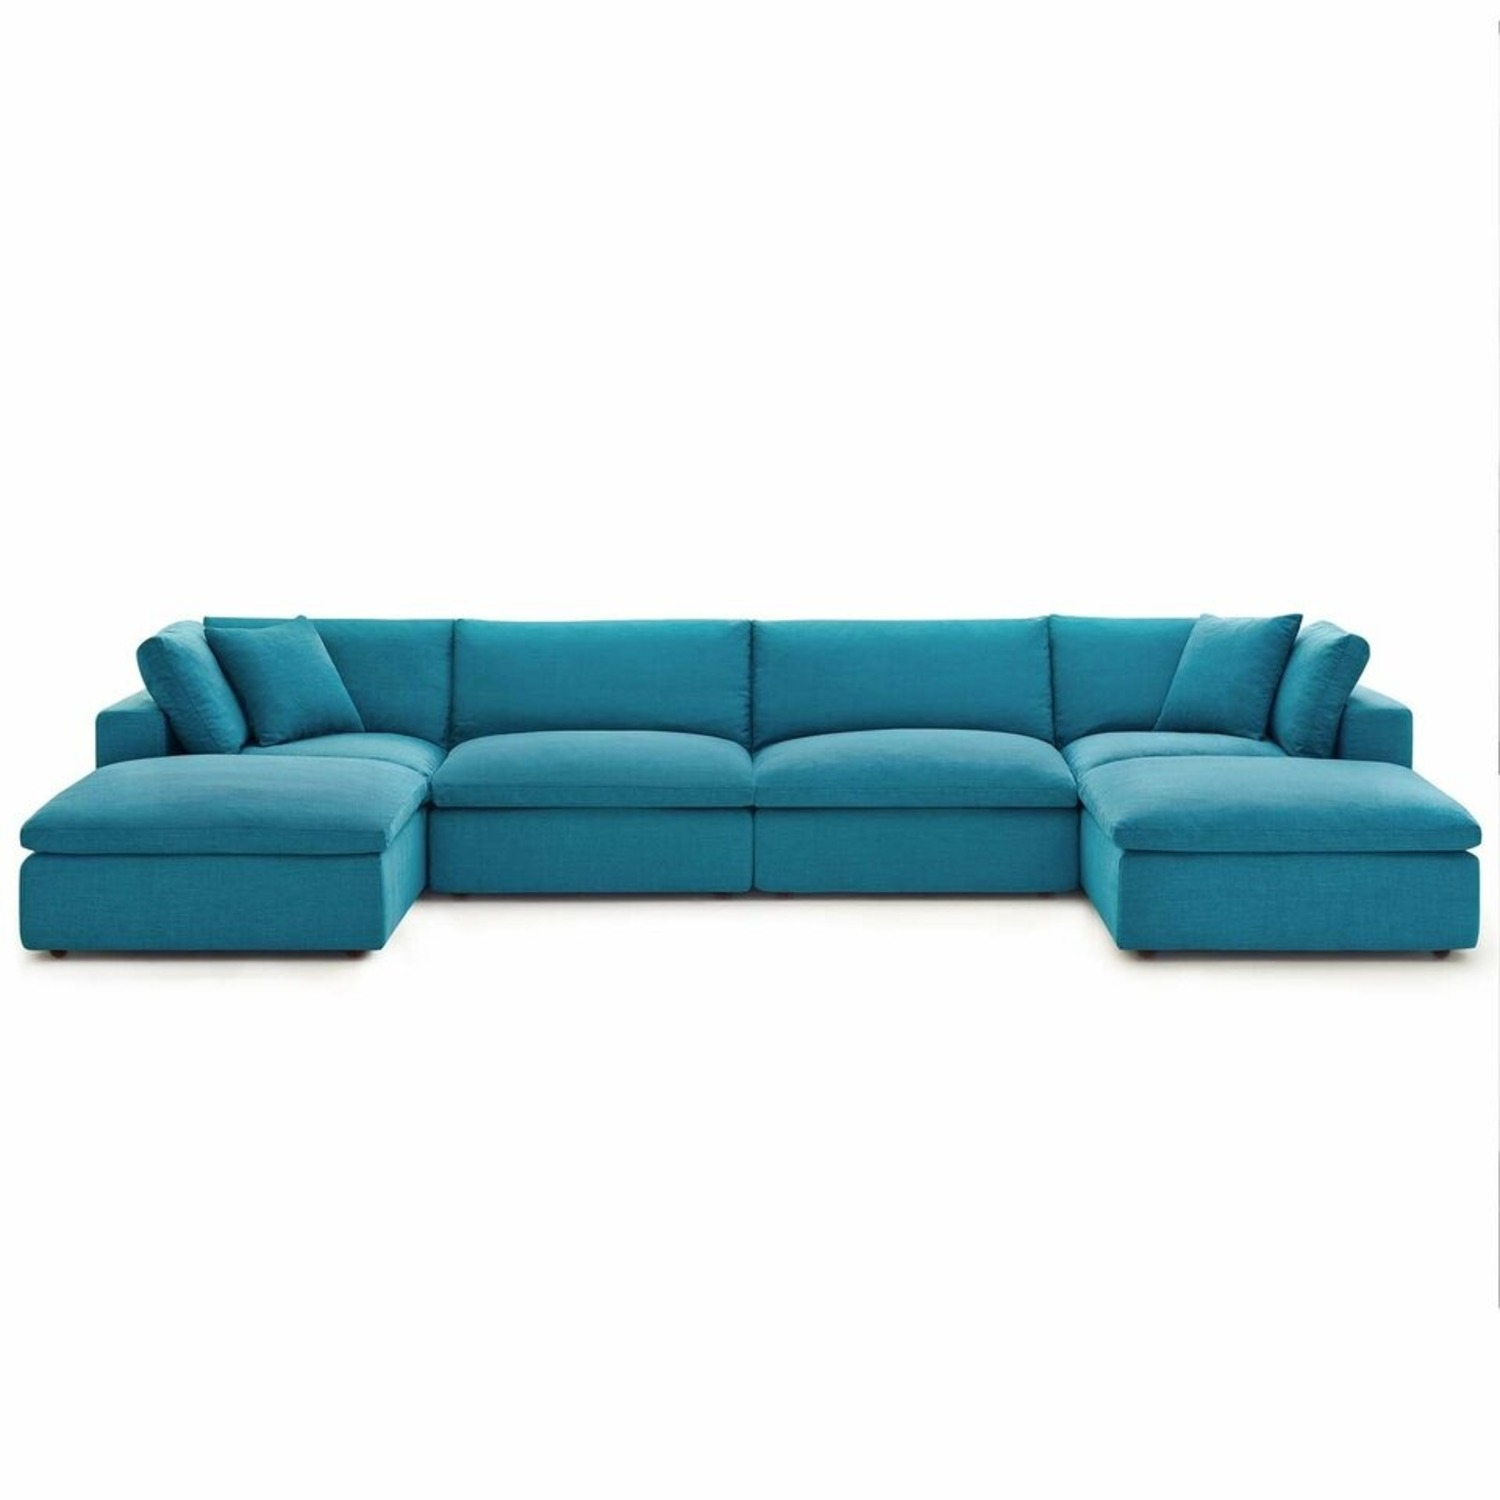 6-Piece Sectional Sofa In Teal Linen Fabric - image-0